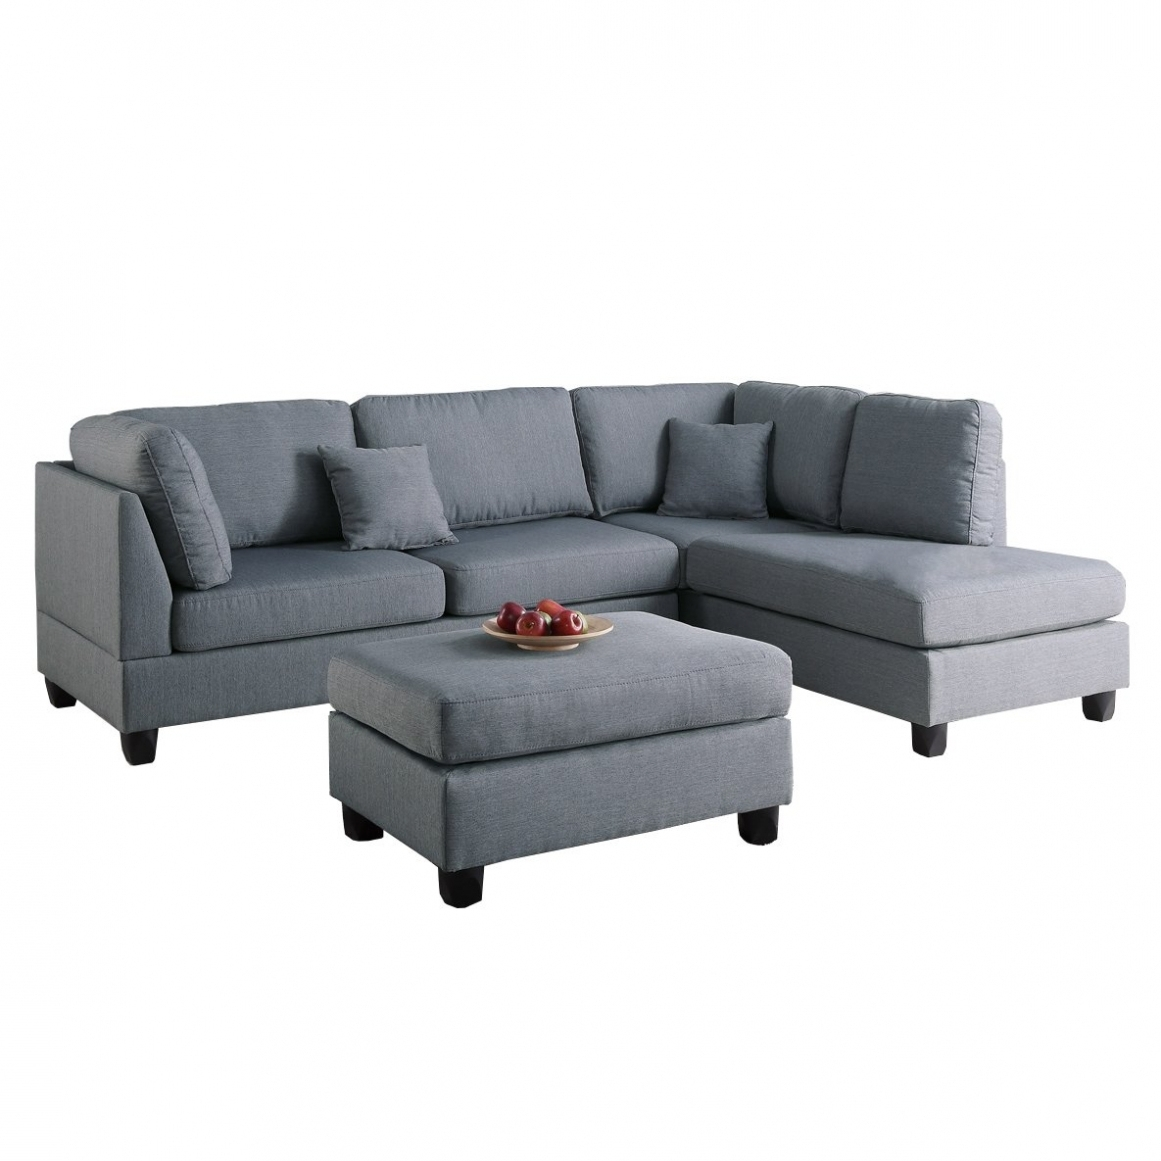 Furniture: Furniture: Changeable Sofa | Walmart Sectional Sofa With Regard To Sectional Sofas At Walmart (Image 4 of 10)